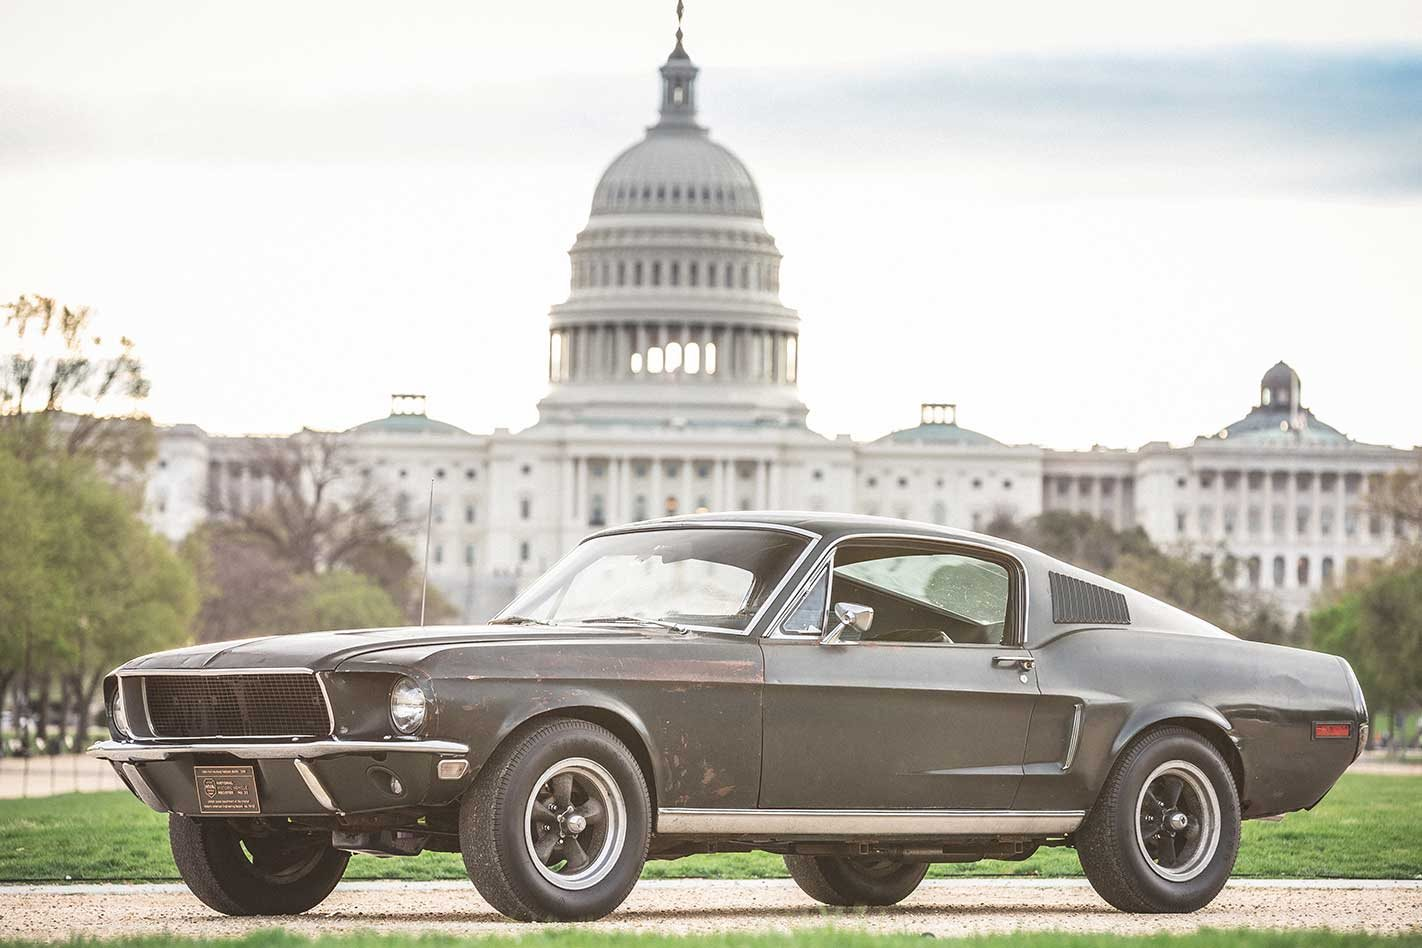 1968 Bullitt Mustang GT hero car to be auctioned